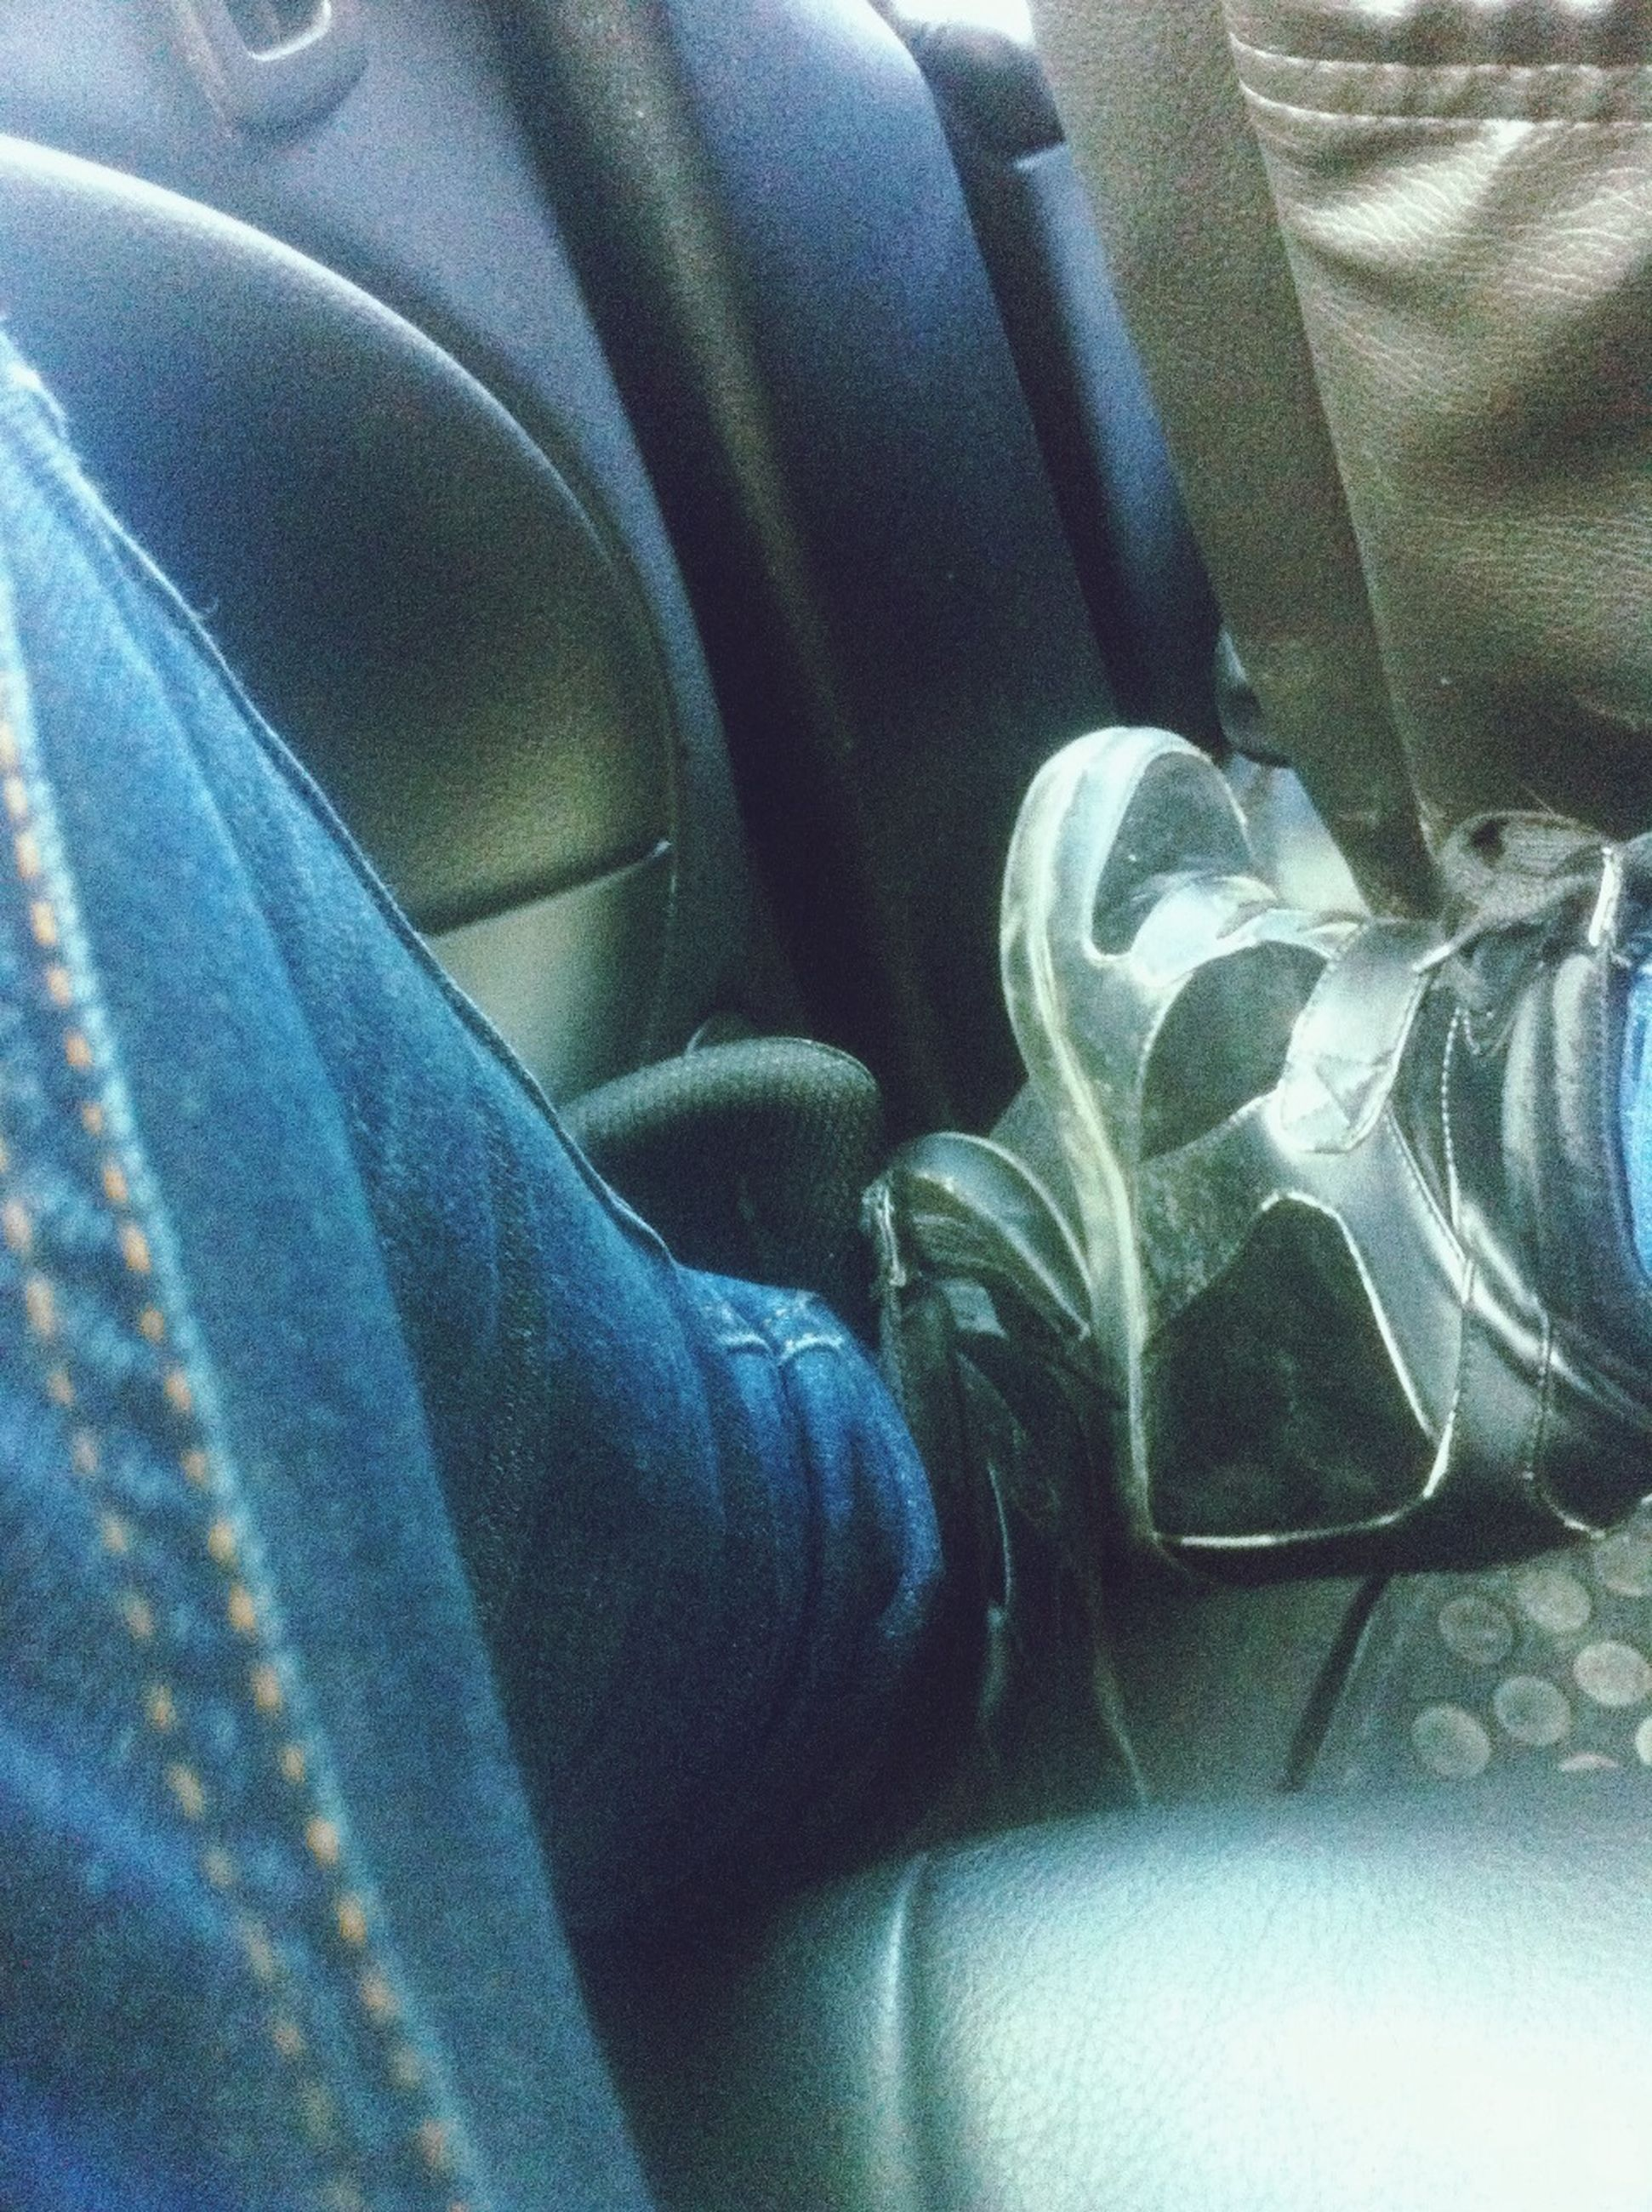 indoors, vehicle interior, person, transportation, low section, land vehicle, vehicle seat, mode of transport, close-up, car, part of, textile, jeans, relaxation, car interior, sitting, shoe